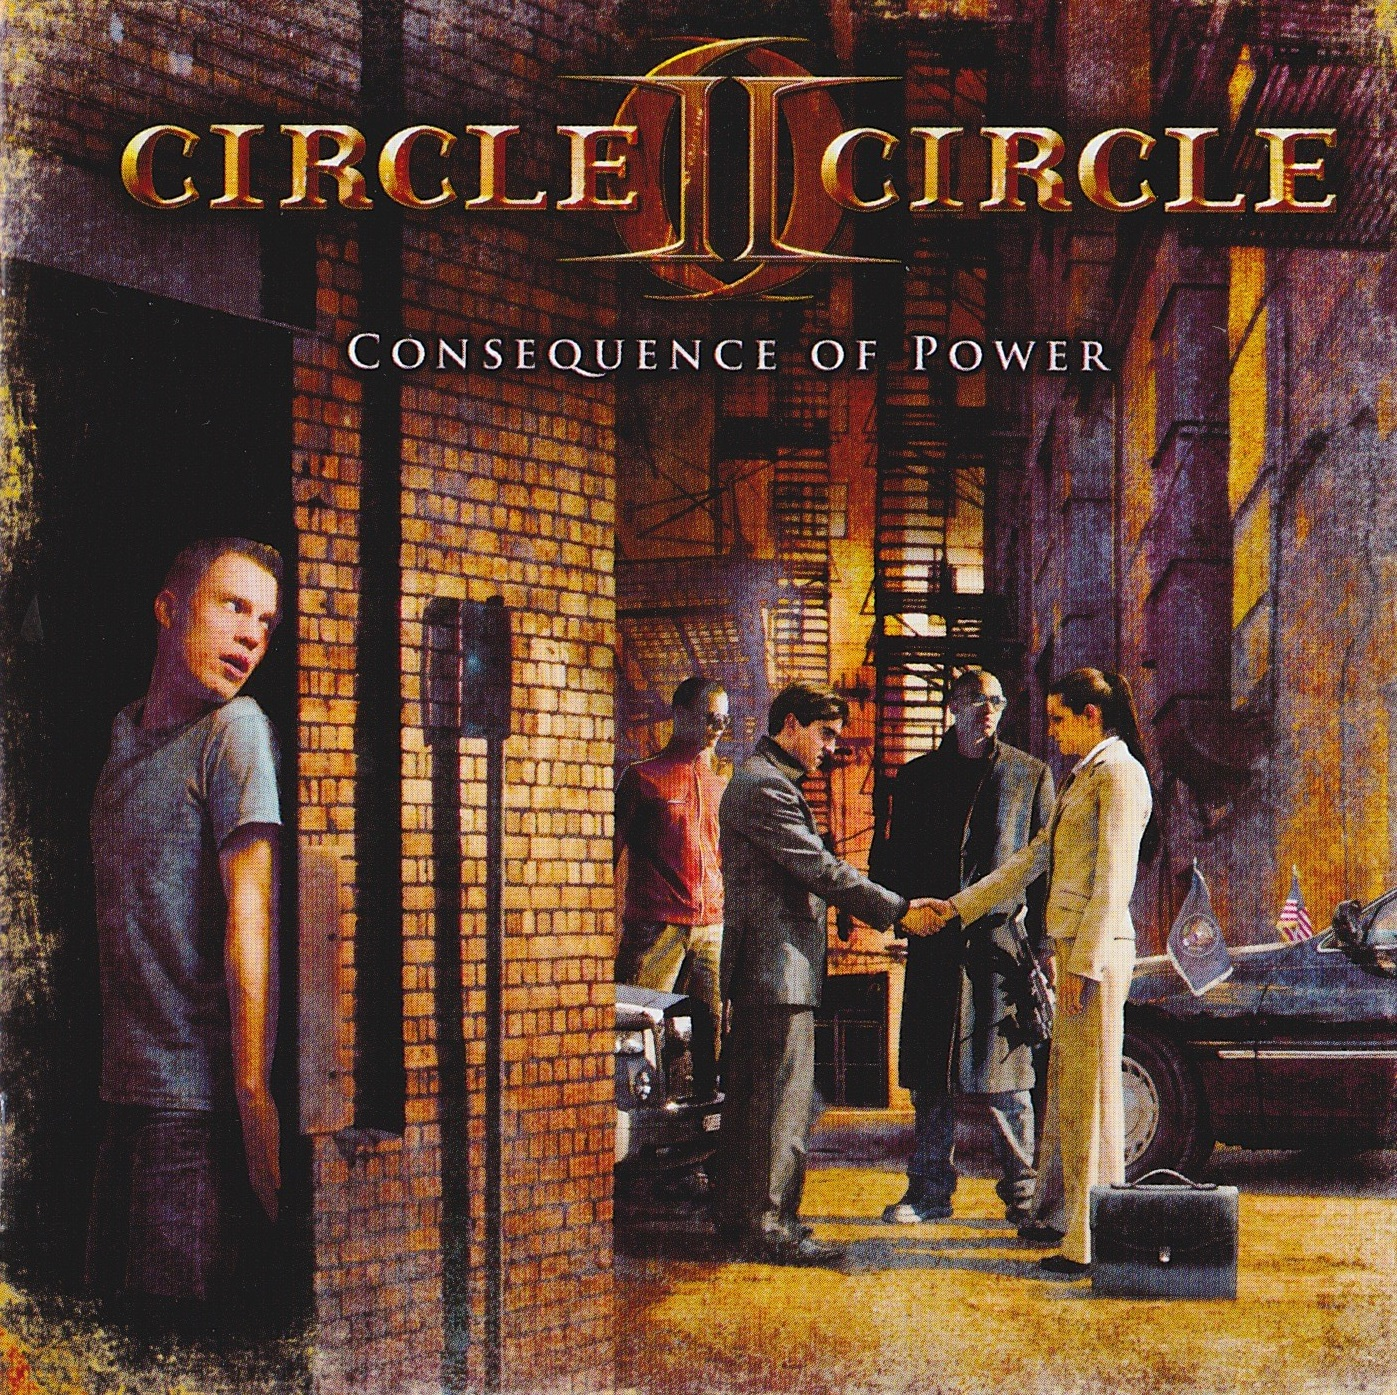 Circle II Circle — Consequence Of Power (2010)